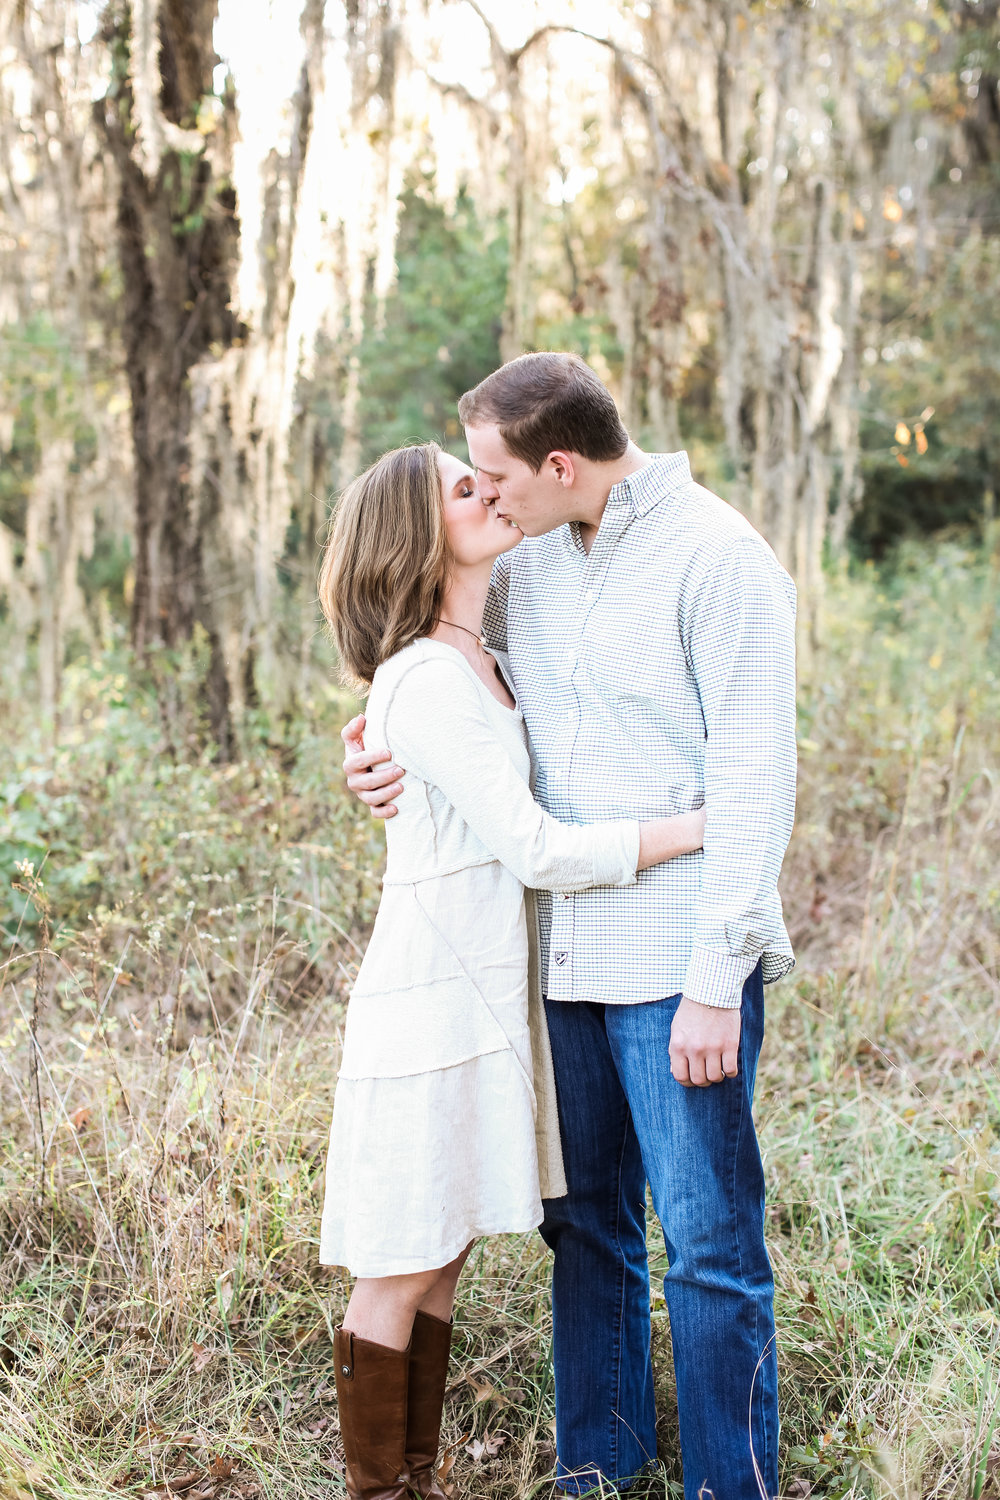 Matty-Drollette-Engagments-Montgomery-Alabama-Photographer-105.jpg